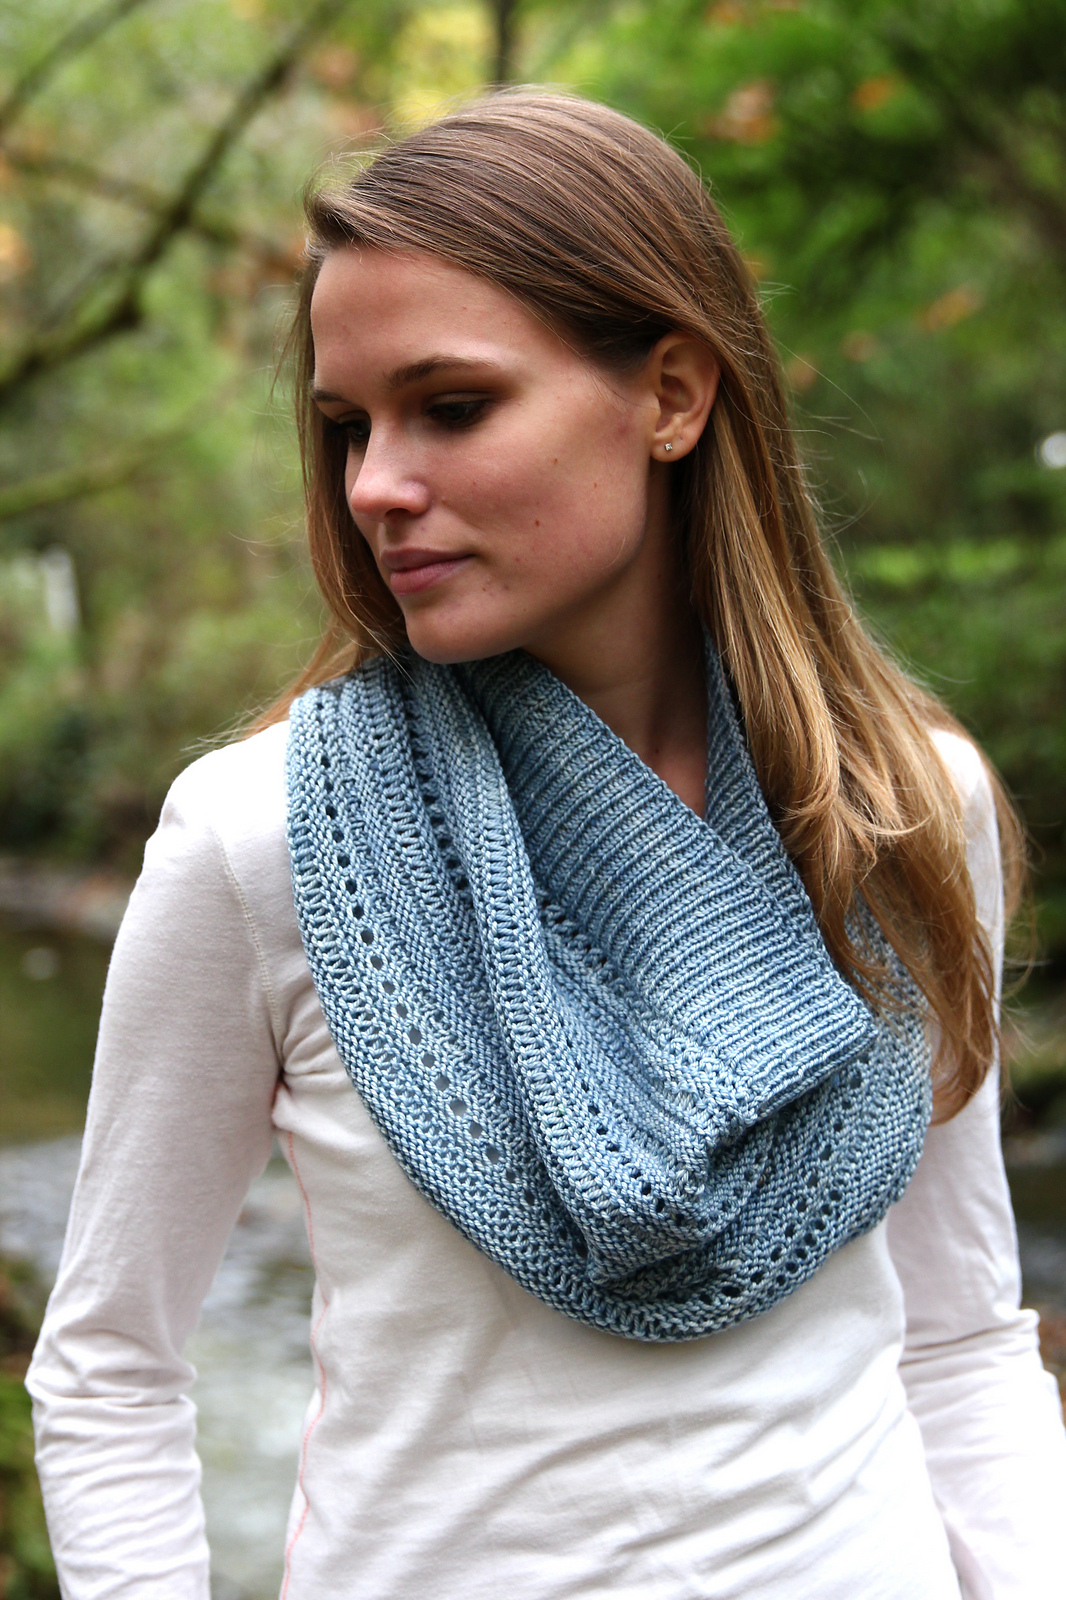 The Riverbank cowl by Melissa Thompson of Sweet Fiber Yarns would be perfect pairing in Hennessy DK. Image courtesy of Melissa Thompson.